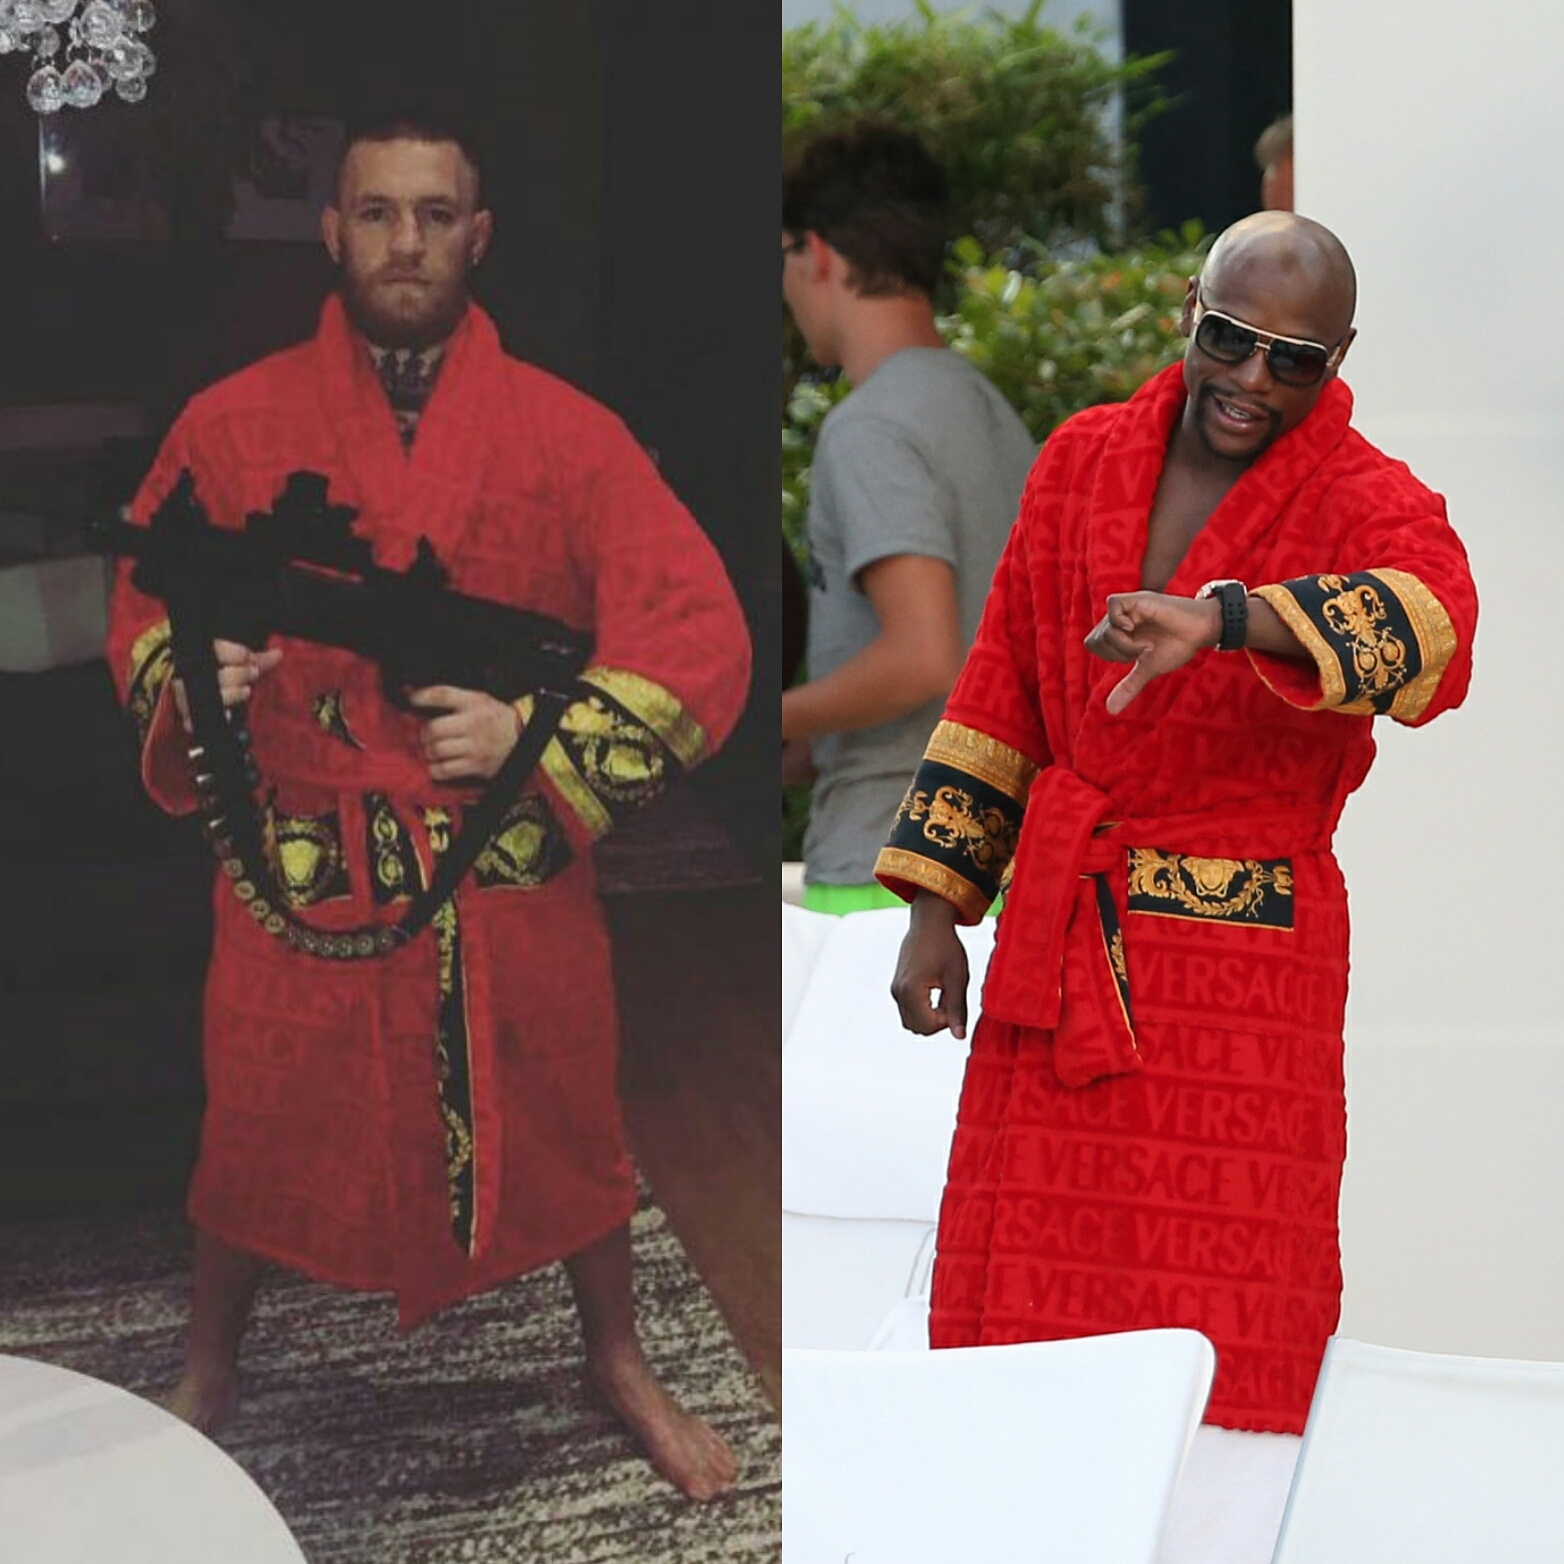 conor-mcgregor-vs-floyd-mayweather-jr-versace-robe-athletes-fashion-sports-fashion